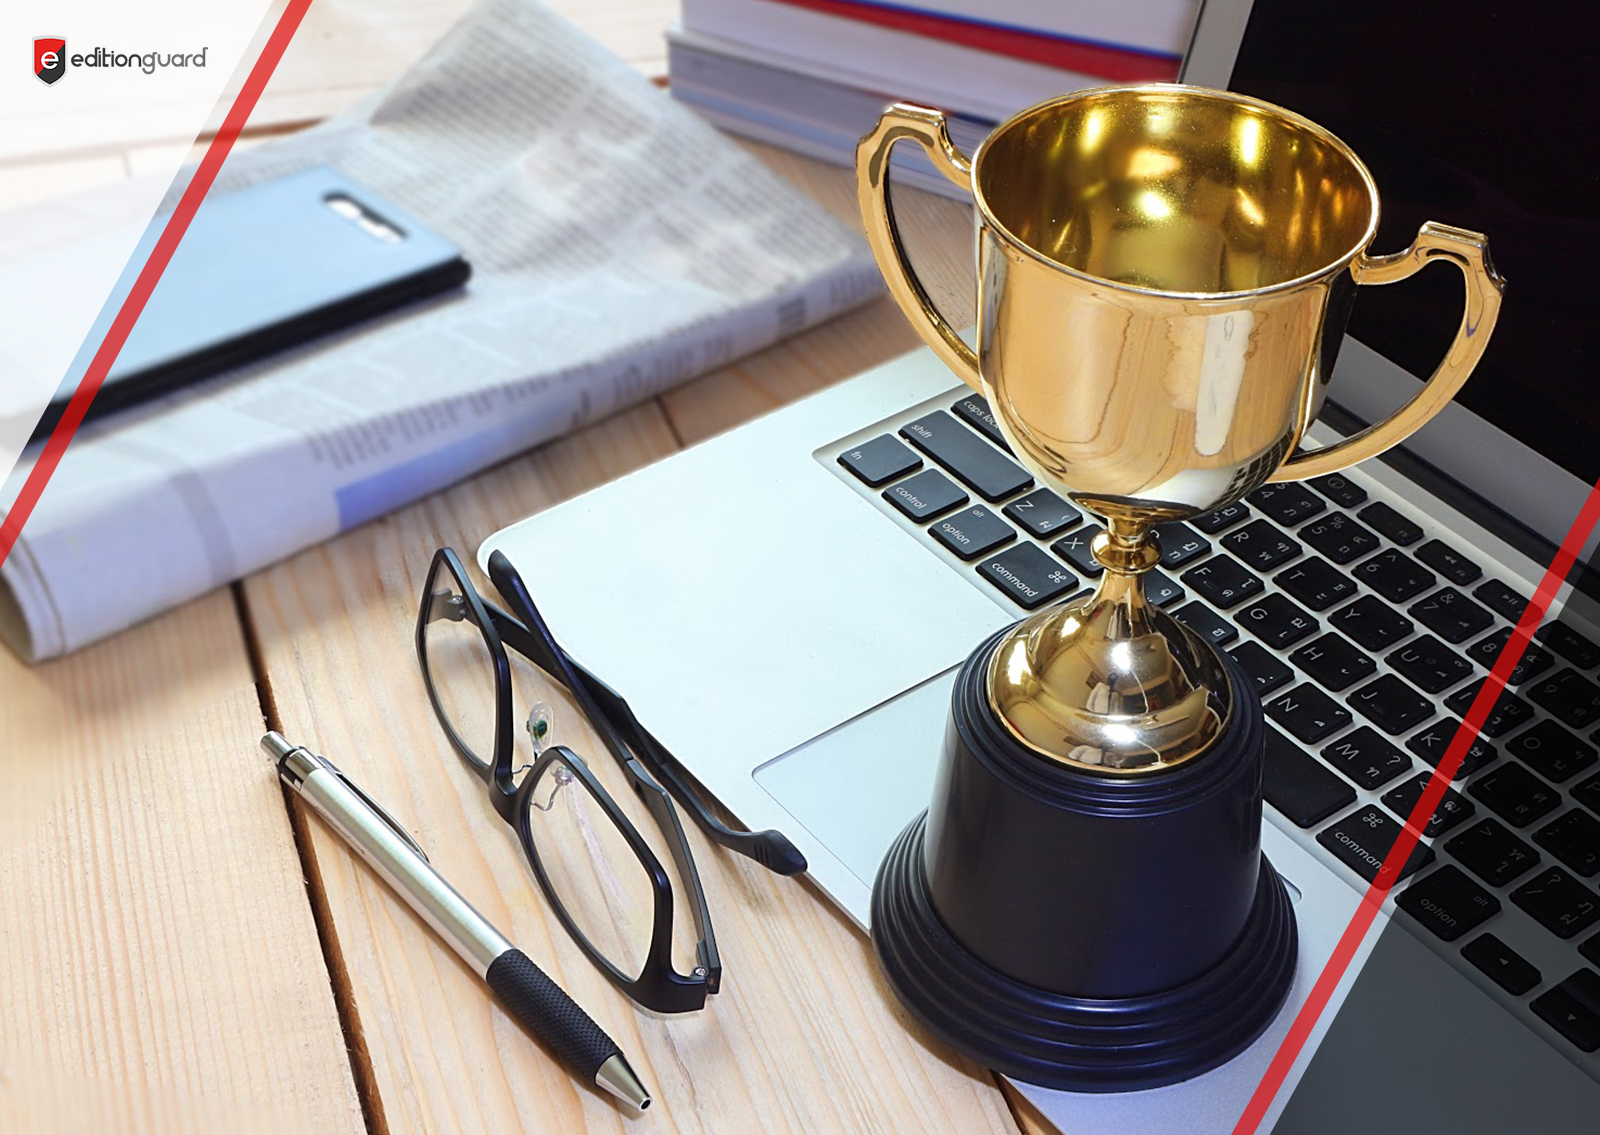 The 22 Best Writing Contests with Cash Prizes - EditionGuard